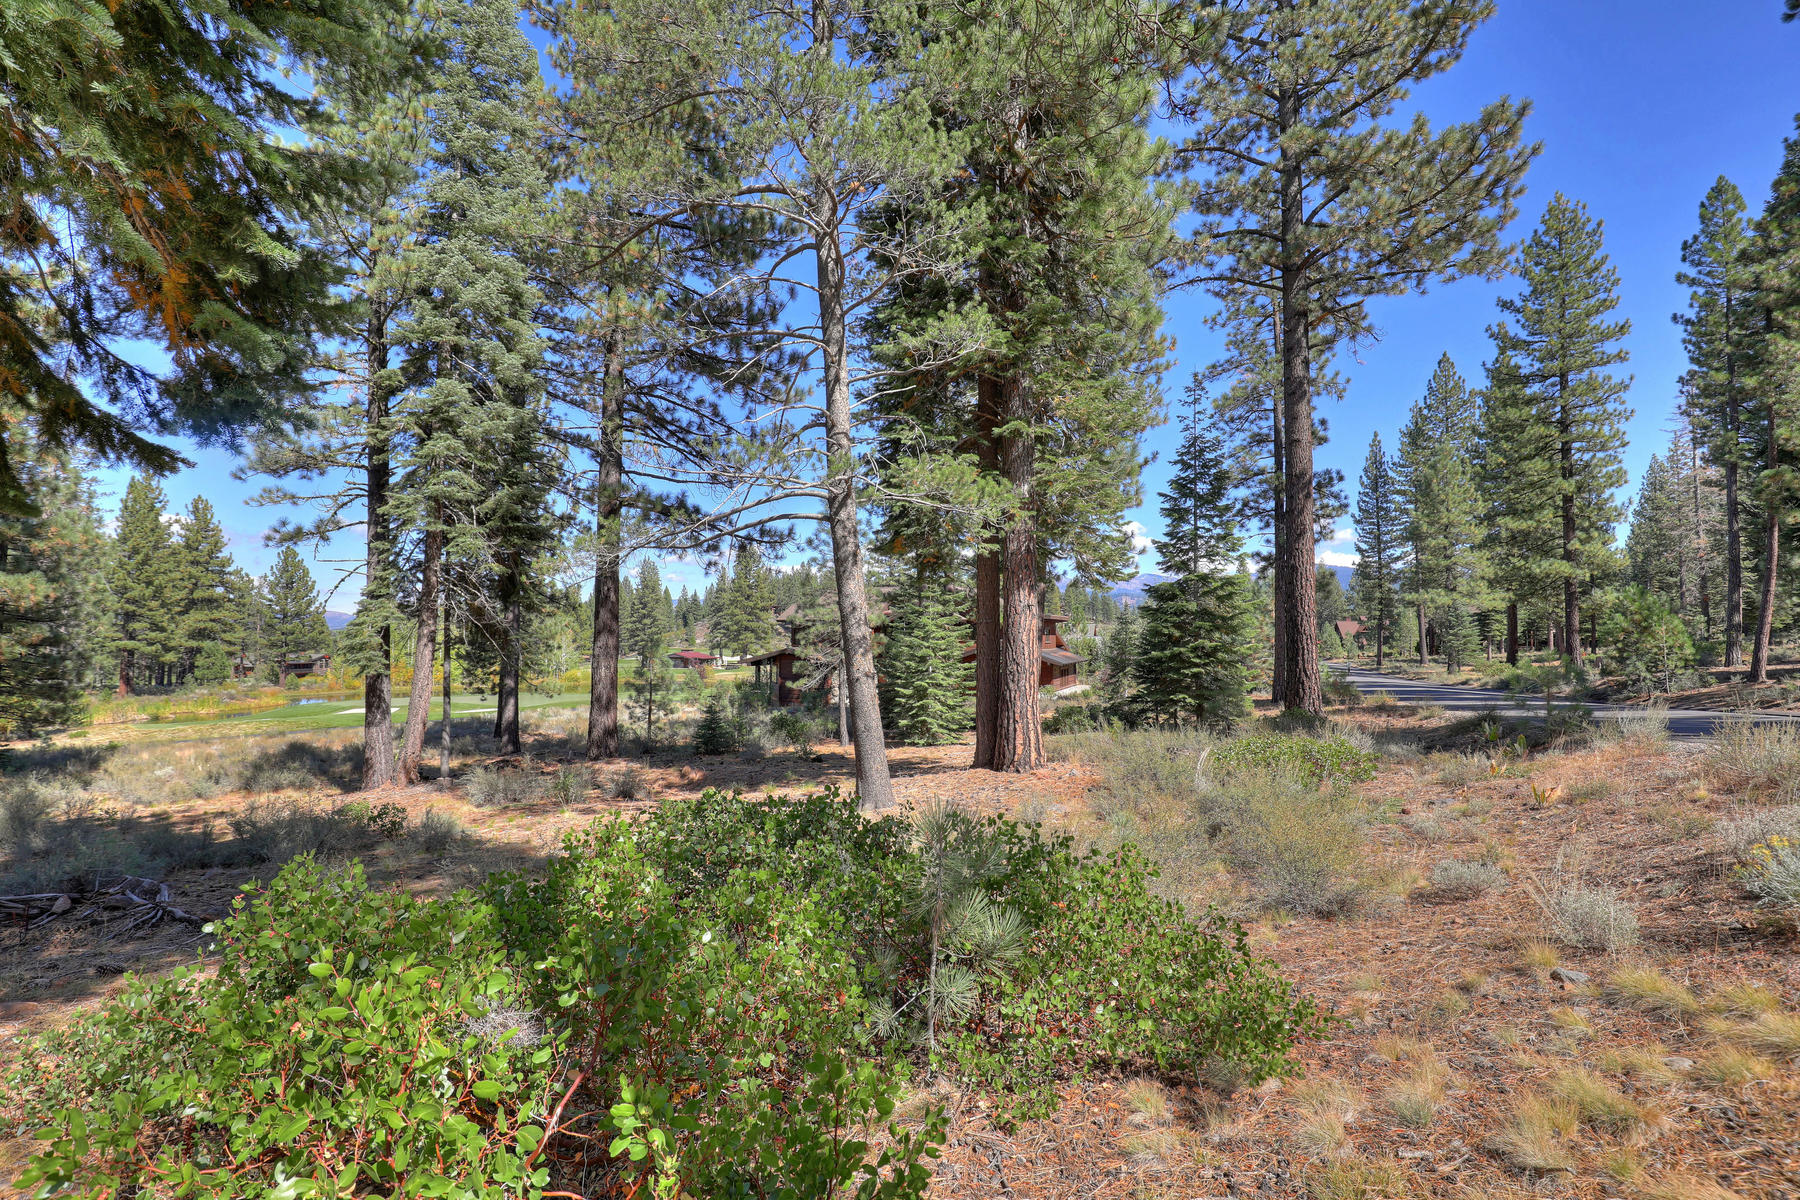 Additional photo for property listing at 7105 Lahontan Drive, Lot 200, Truckee, CA 96161 7105 Lahontan Drive, Lot 200 Truckee, California 96161 United States